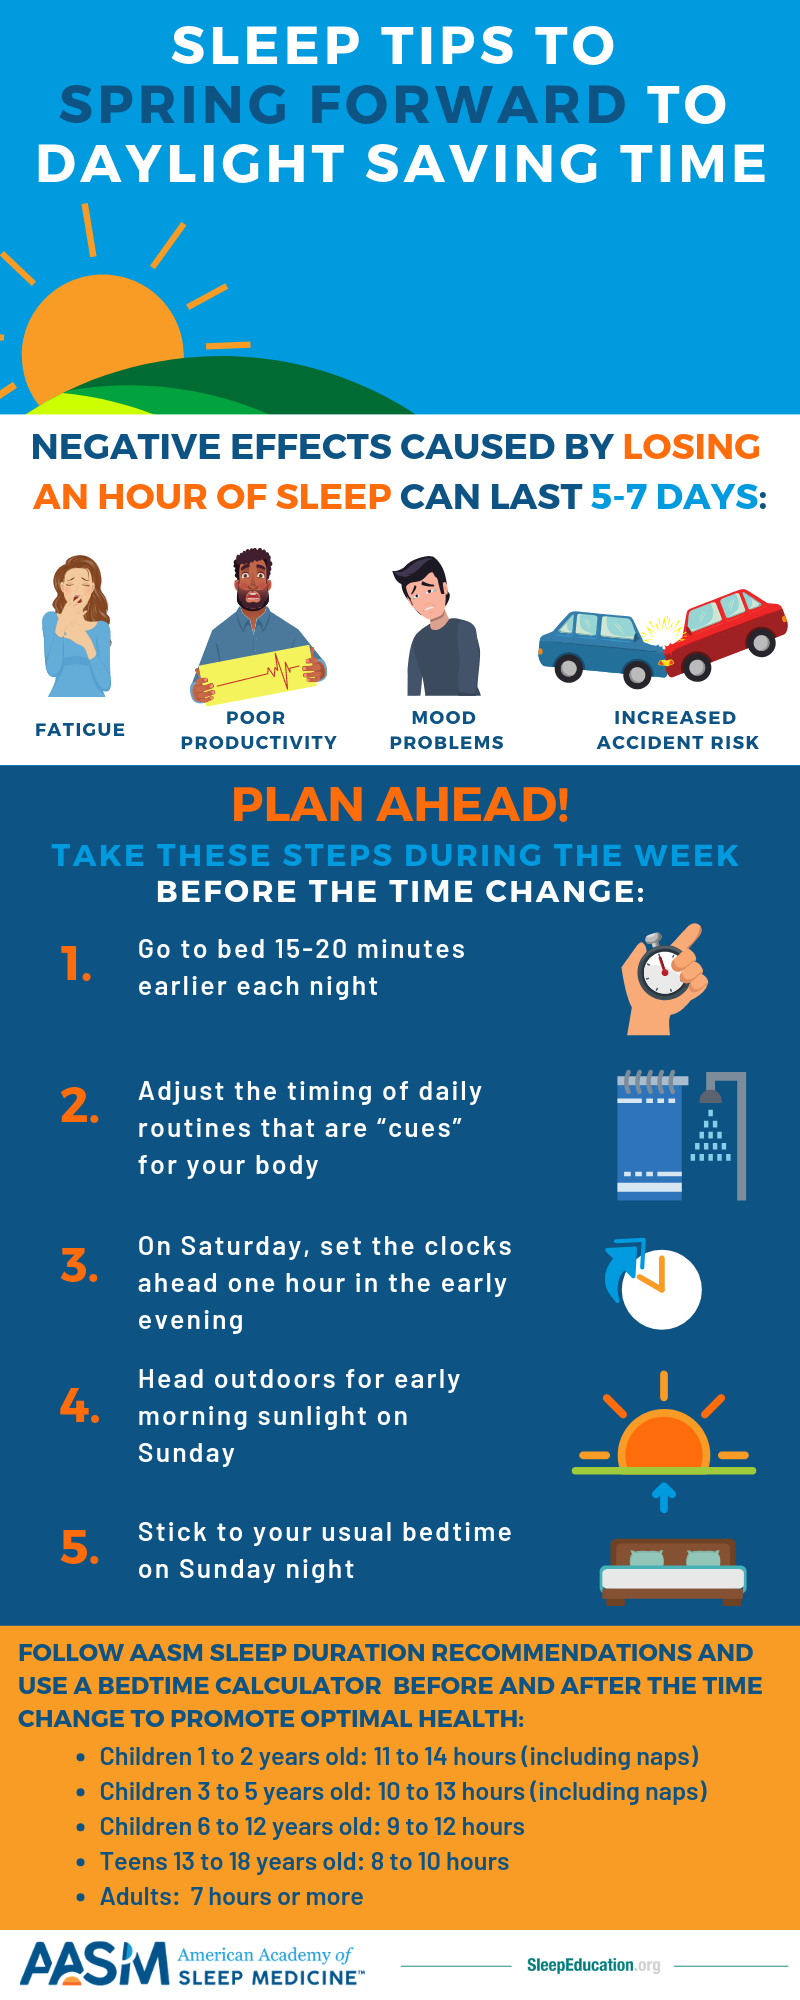 Get ready to spring forward to daylight saving time with these 5 sleep tips that will help you cope with the change!